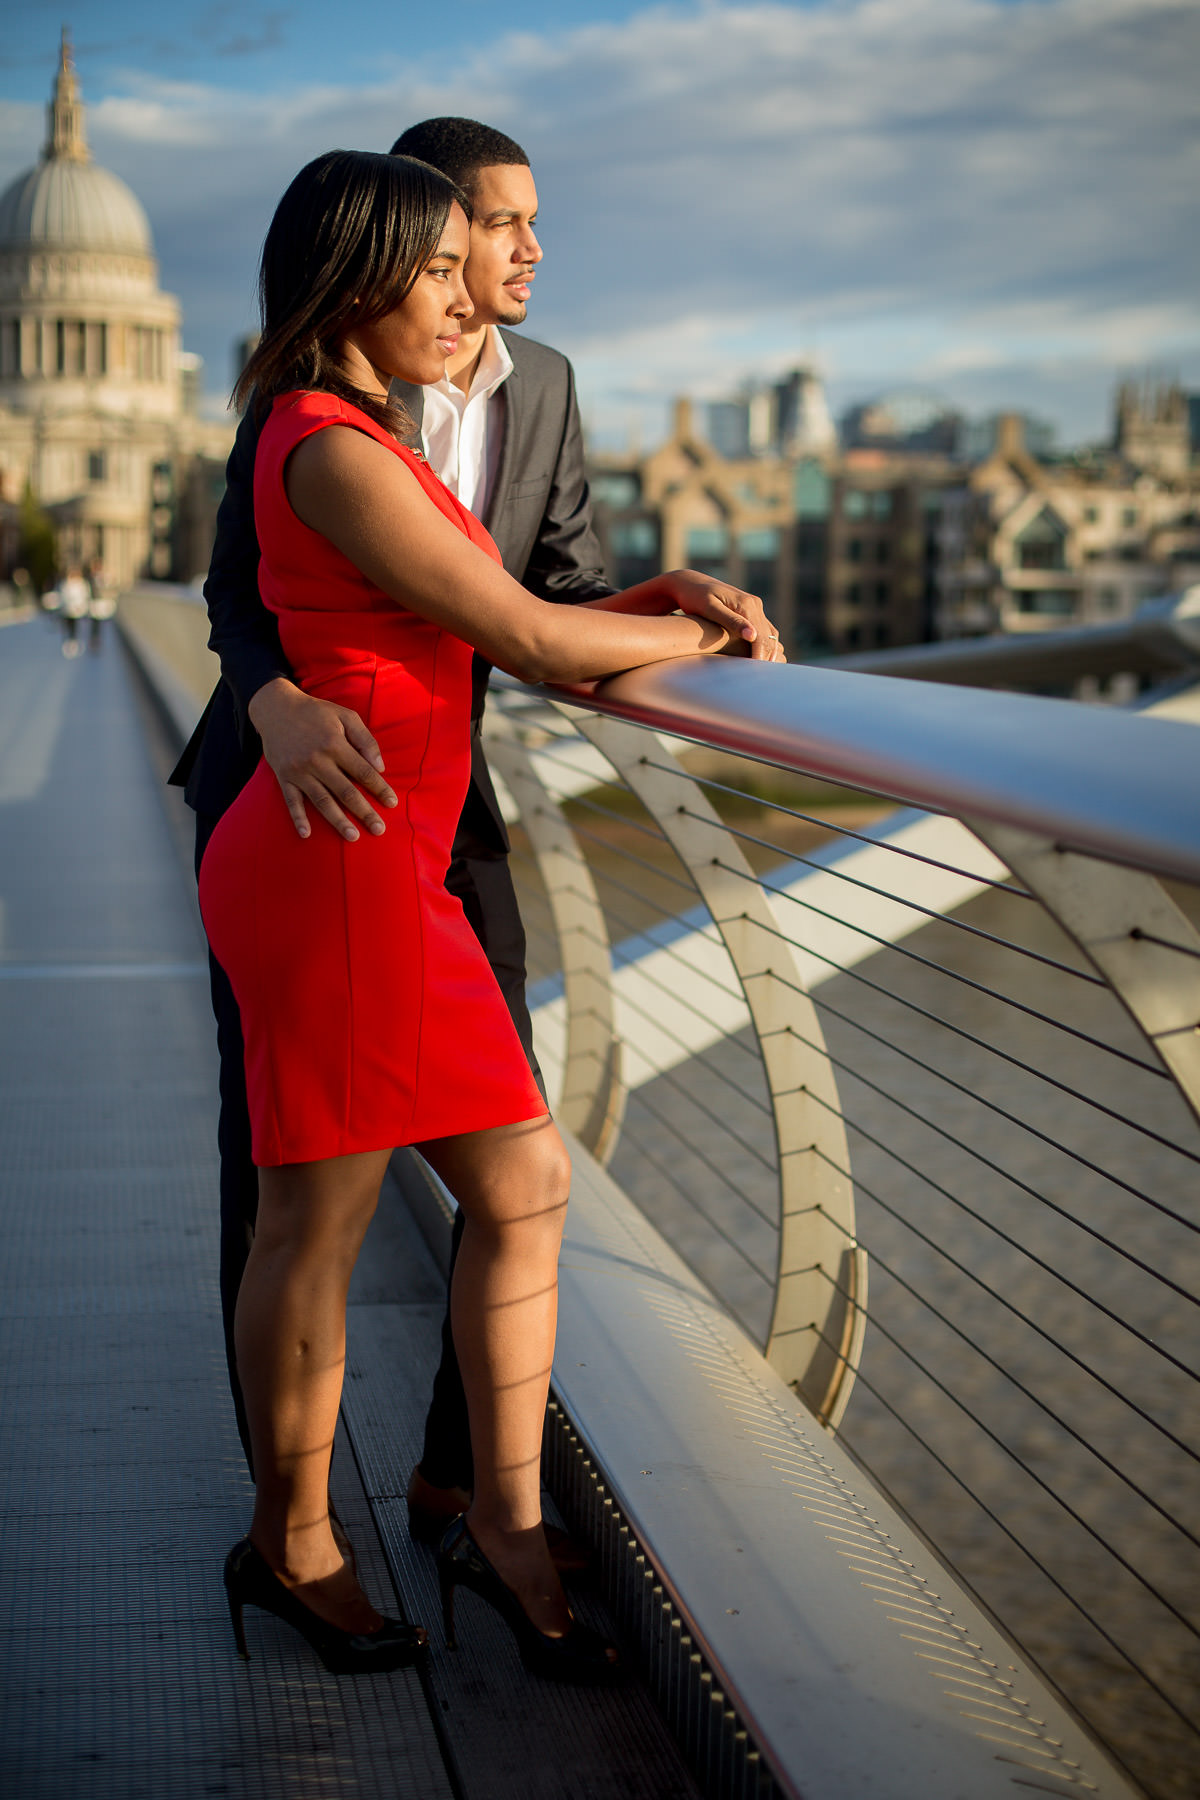 Millennium bridge pre wedding shoot